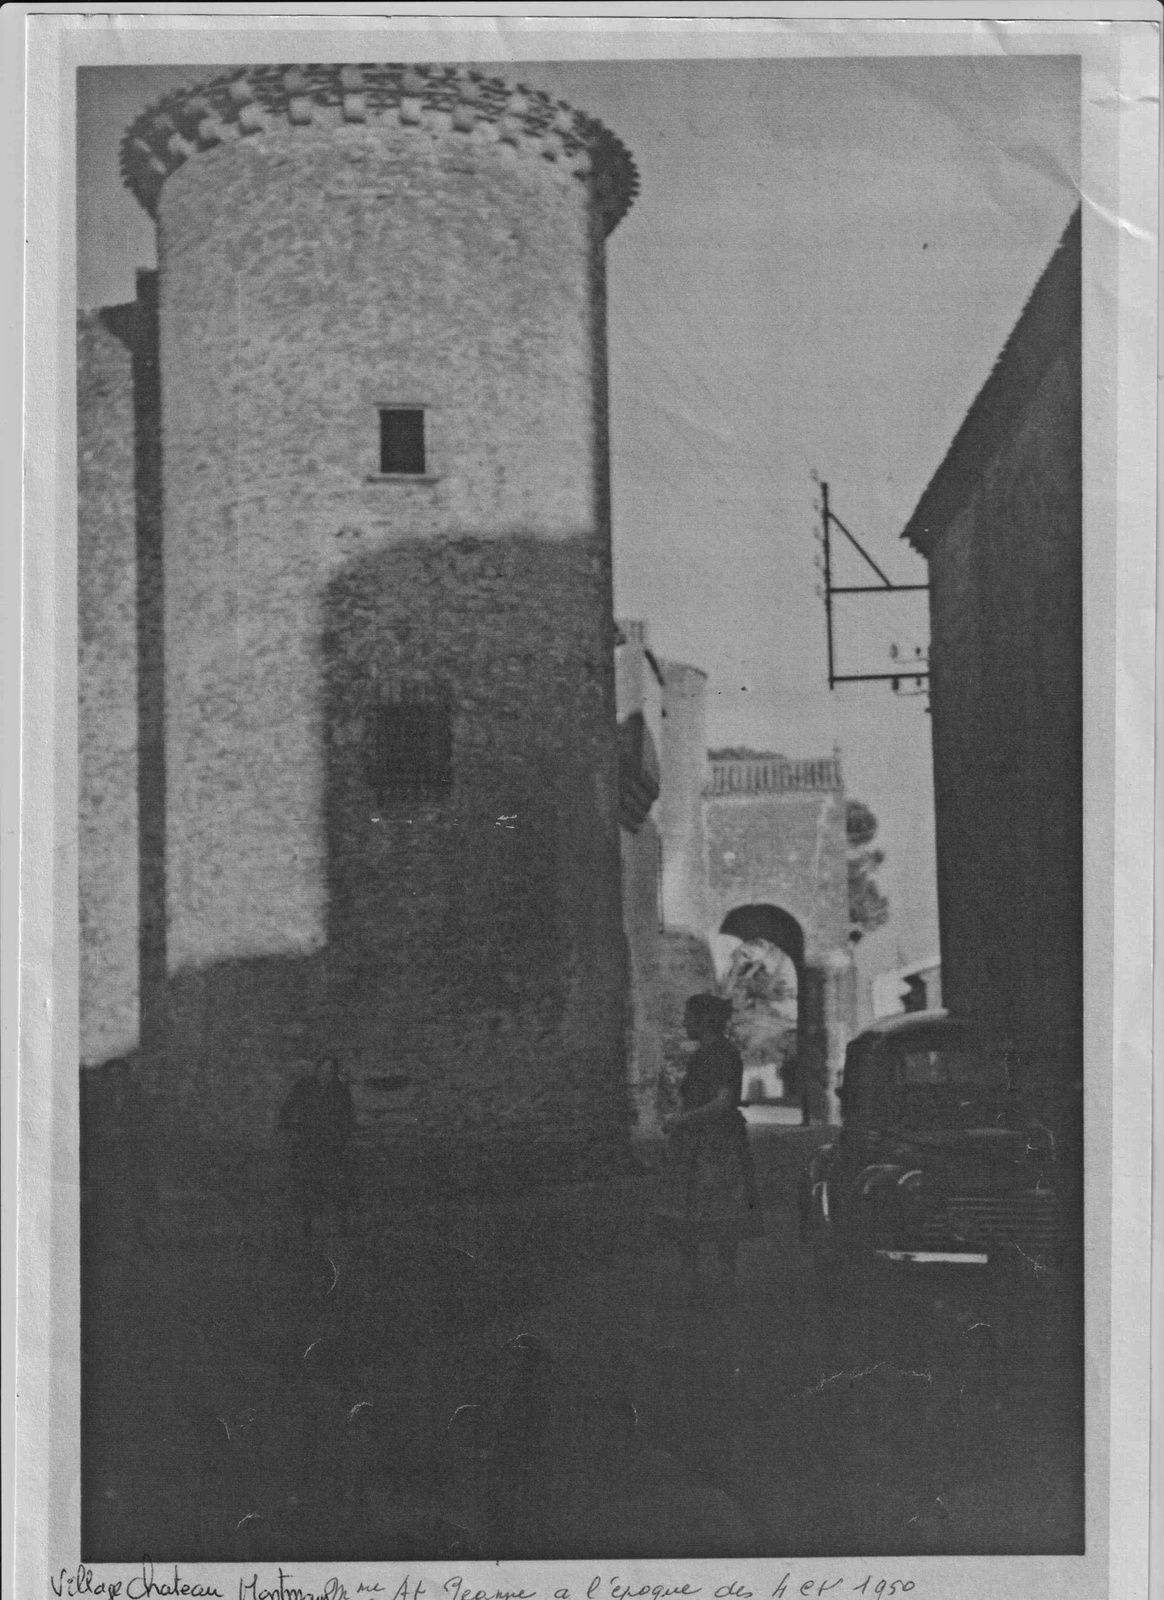 Scène de village à Montmaur 1950, photo coll. JC Rouzaud